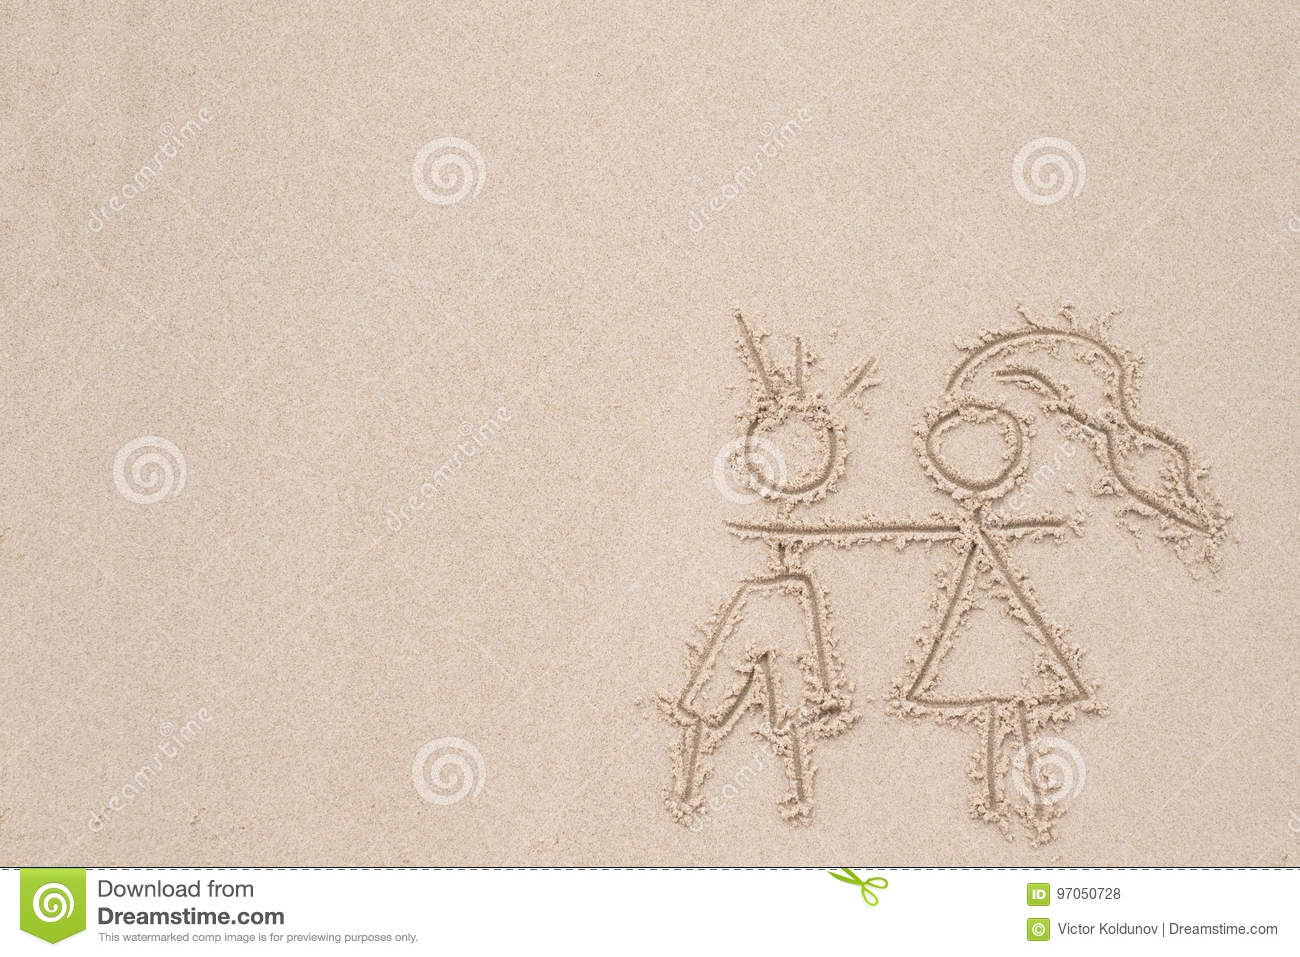 Drawing In The Sand Depicting Love Of Man And Woman Stock Photo